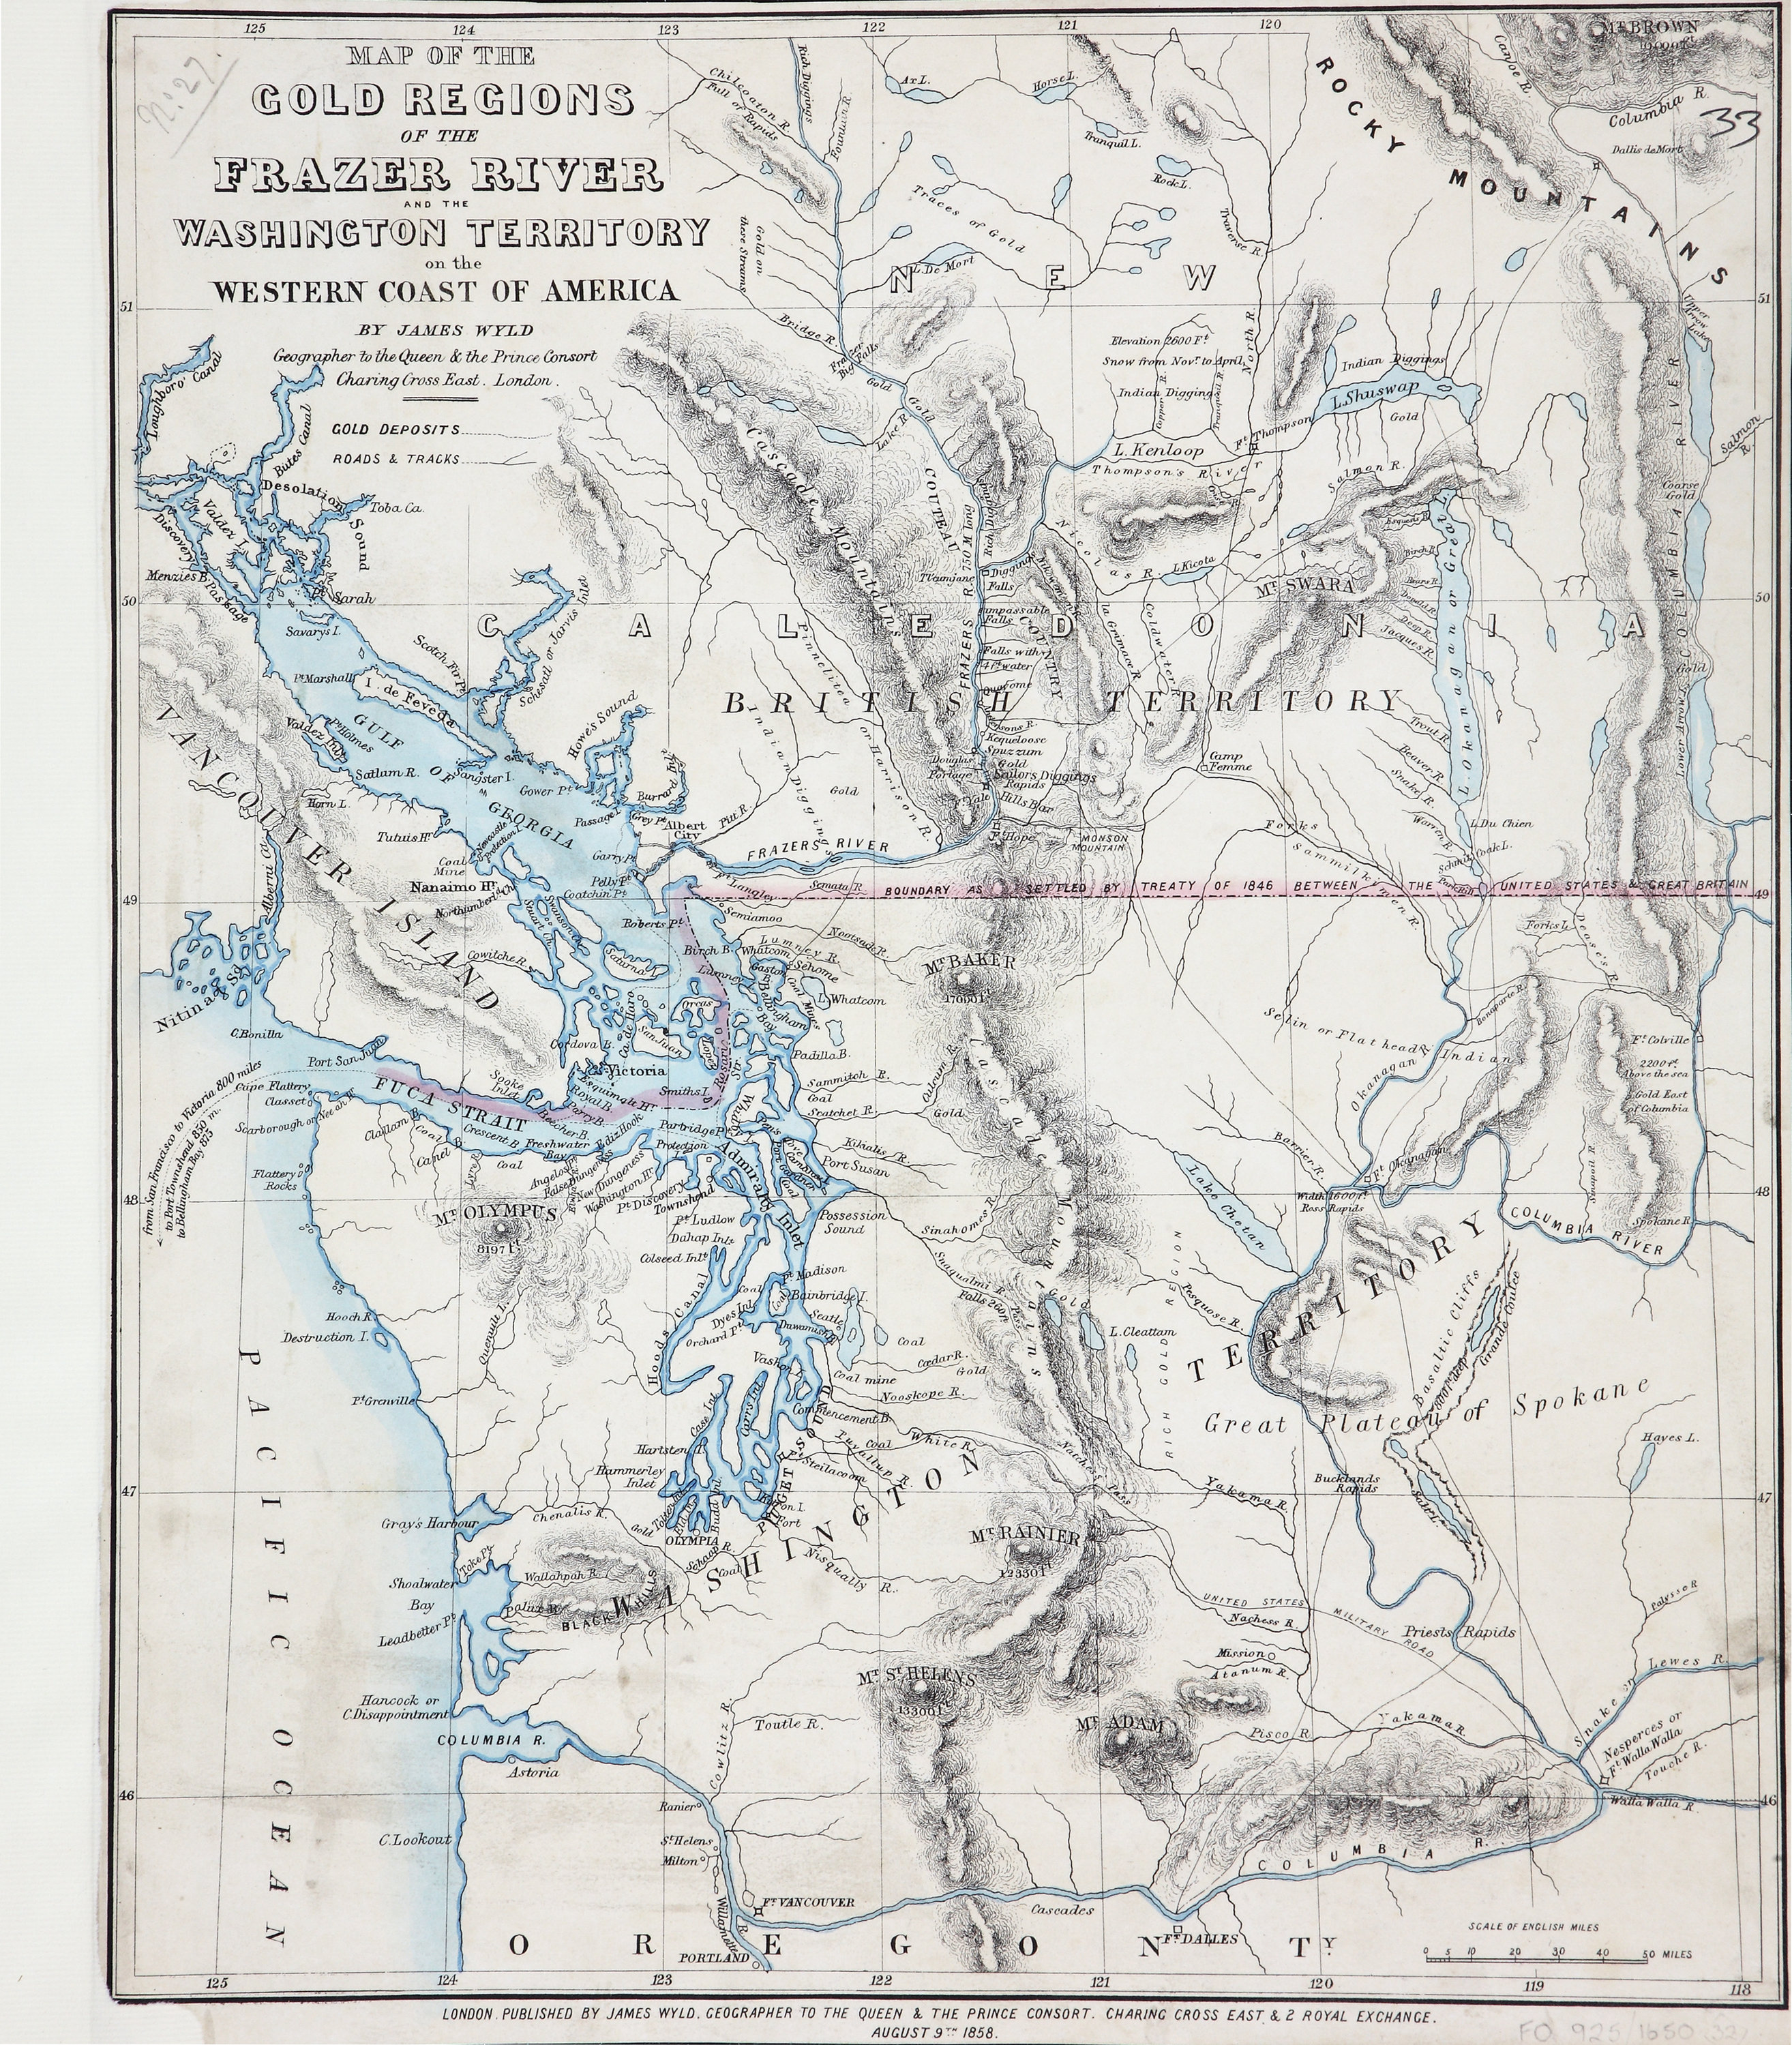 San Juan Water Boundary (Arbitration) : list of maps sent to Admiral Prevost at Berlin on the 12th June 1872 [map 32]